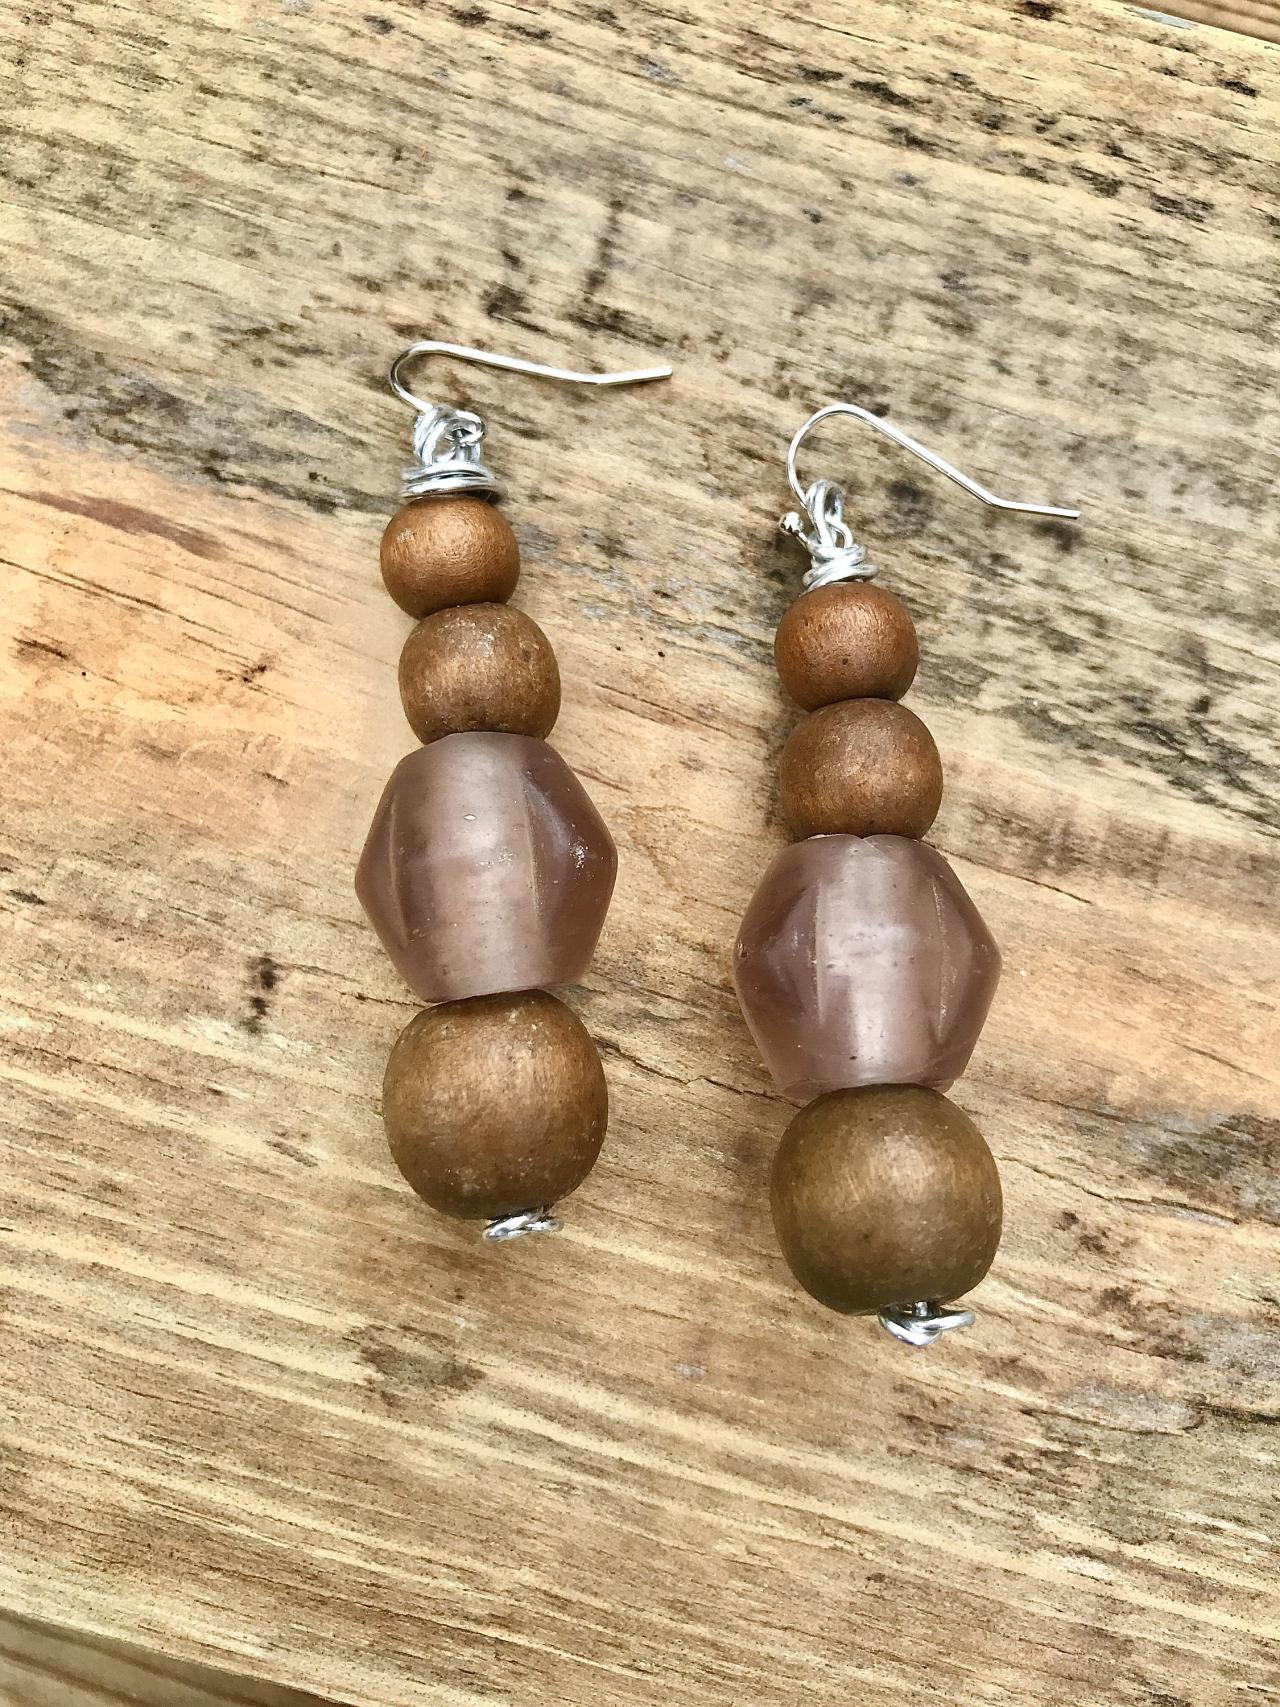 Gorgeous recycled African bottle Glass and wooden beads earrings with sterling silver wires.